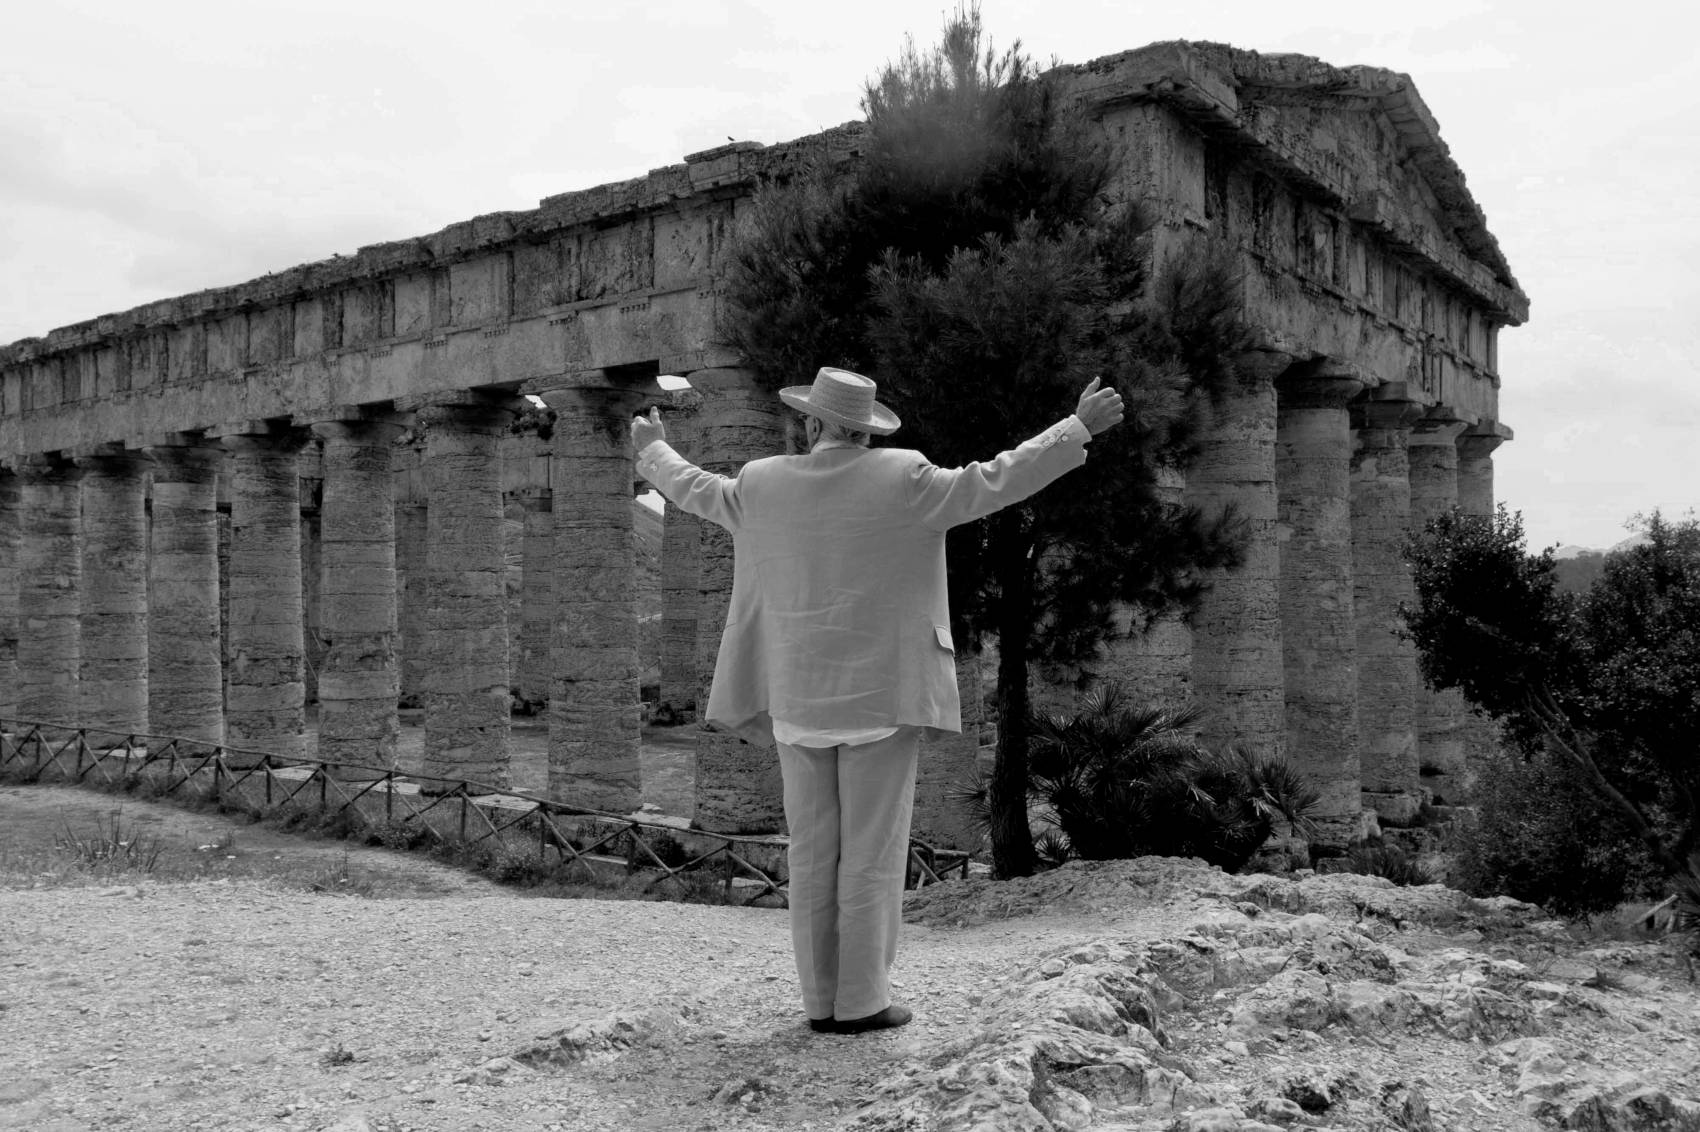 Manolo stood in front of an ancient ruin. He has his back to camera with his arms in the air.